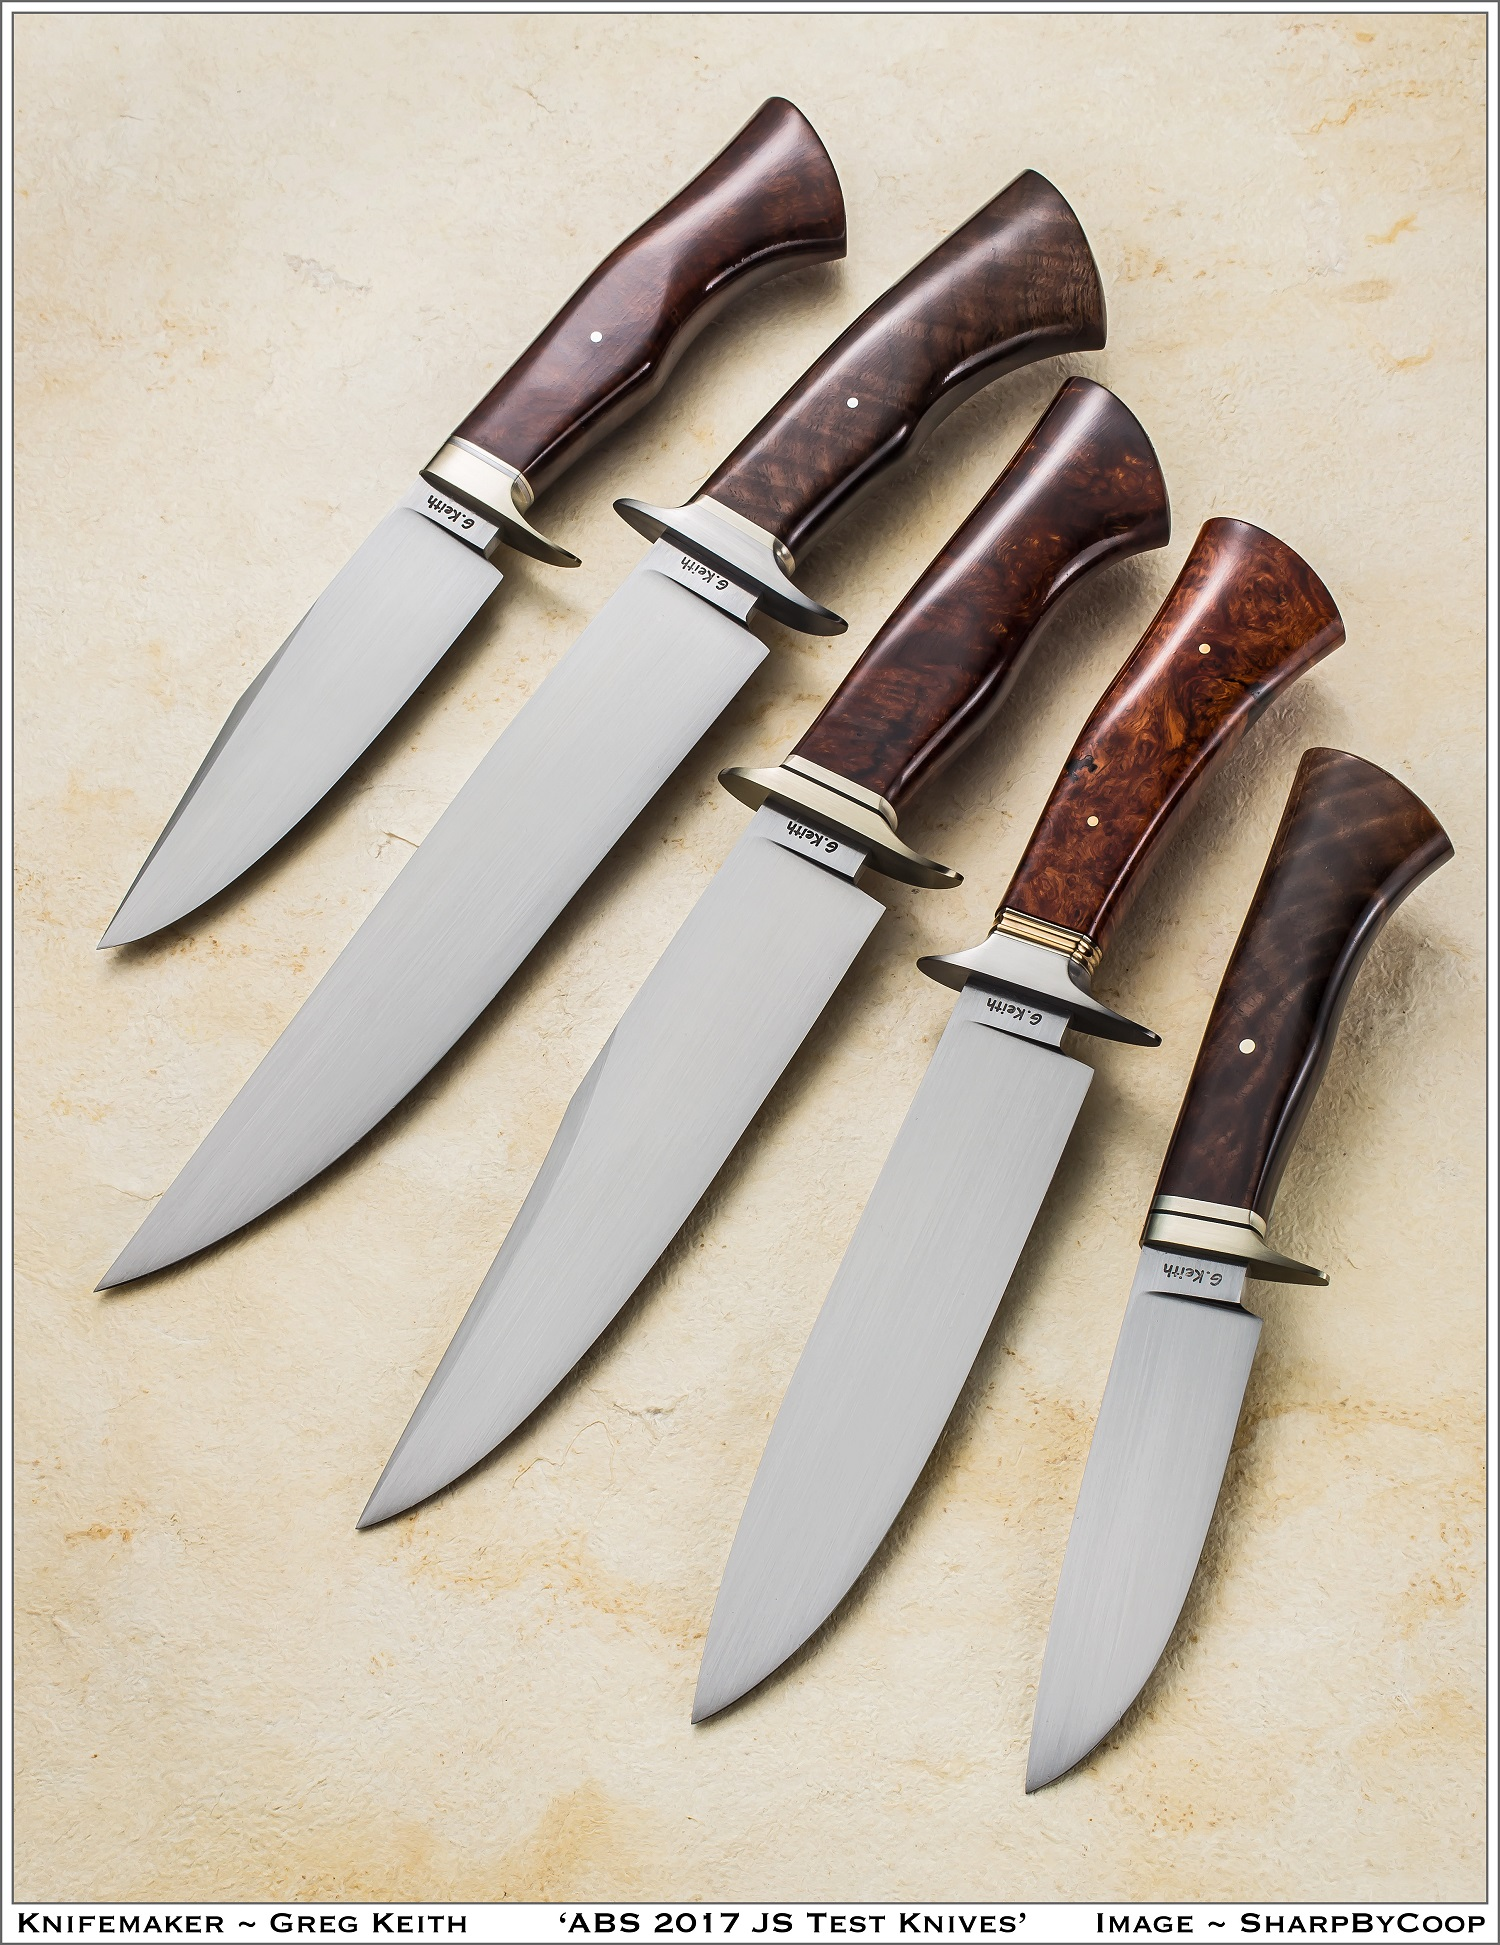 - My name is Greg Keith. I am a bladesmith from Nova Scotia, Canada. I am an accredited Journeyman Smith with the American Bladesmith Society. All of my knives are hand forged from high carbon steel. Please contact me to discuss your custom made knife.